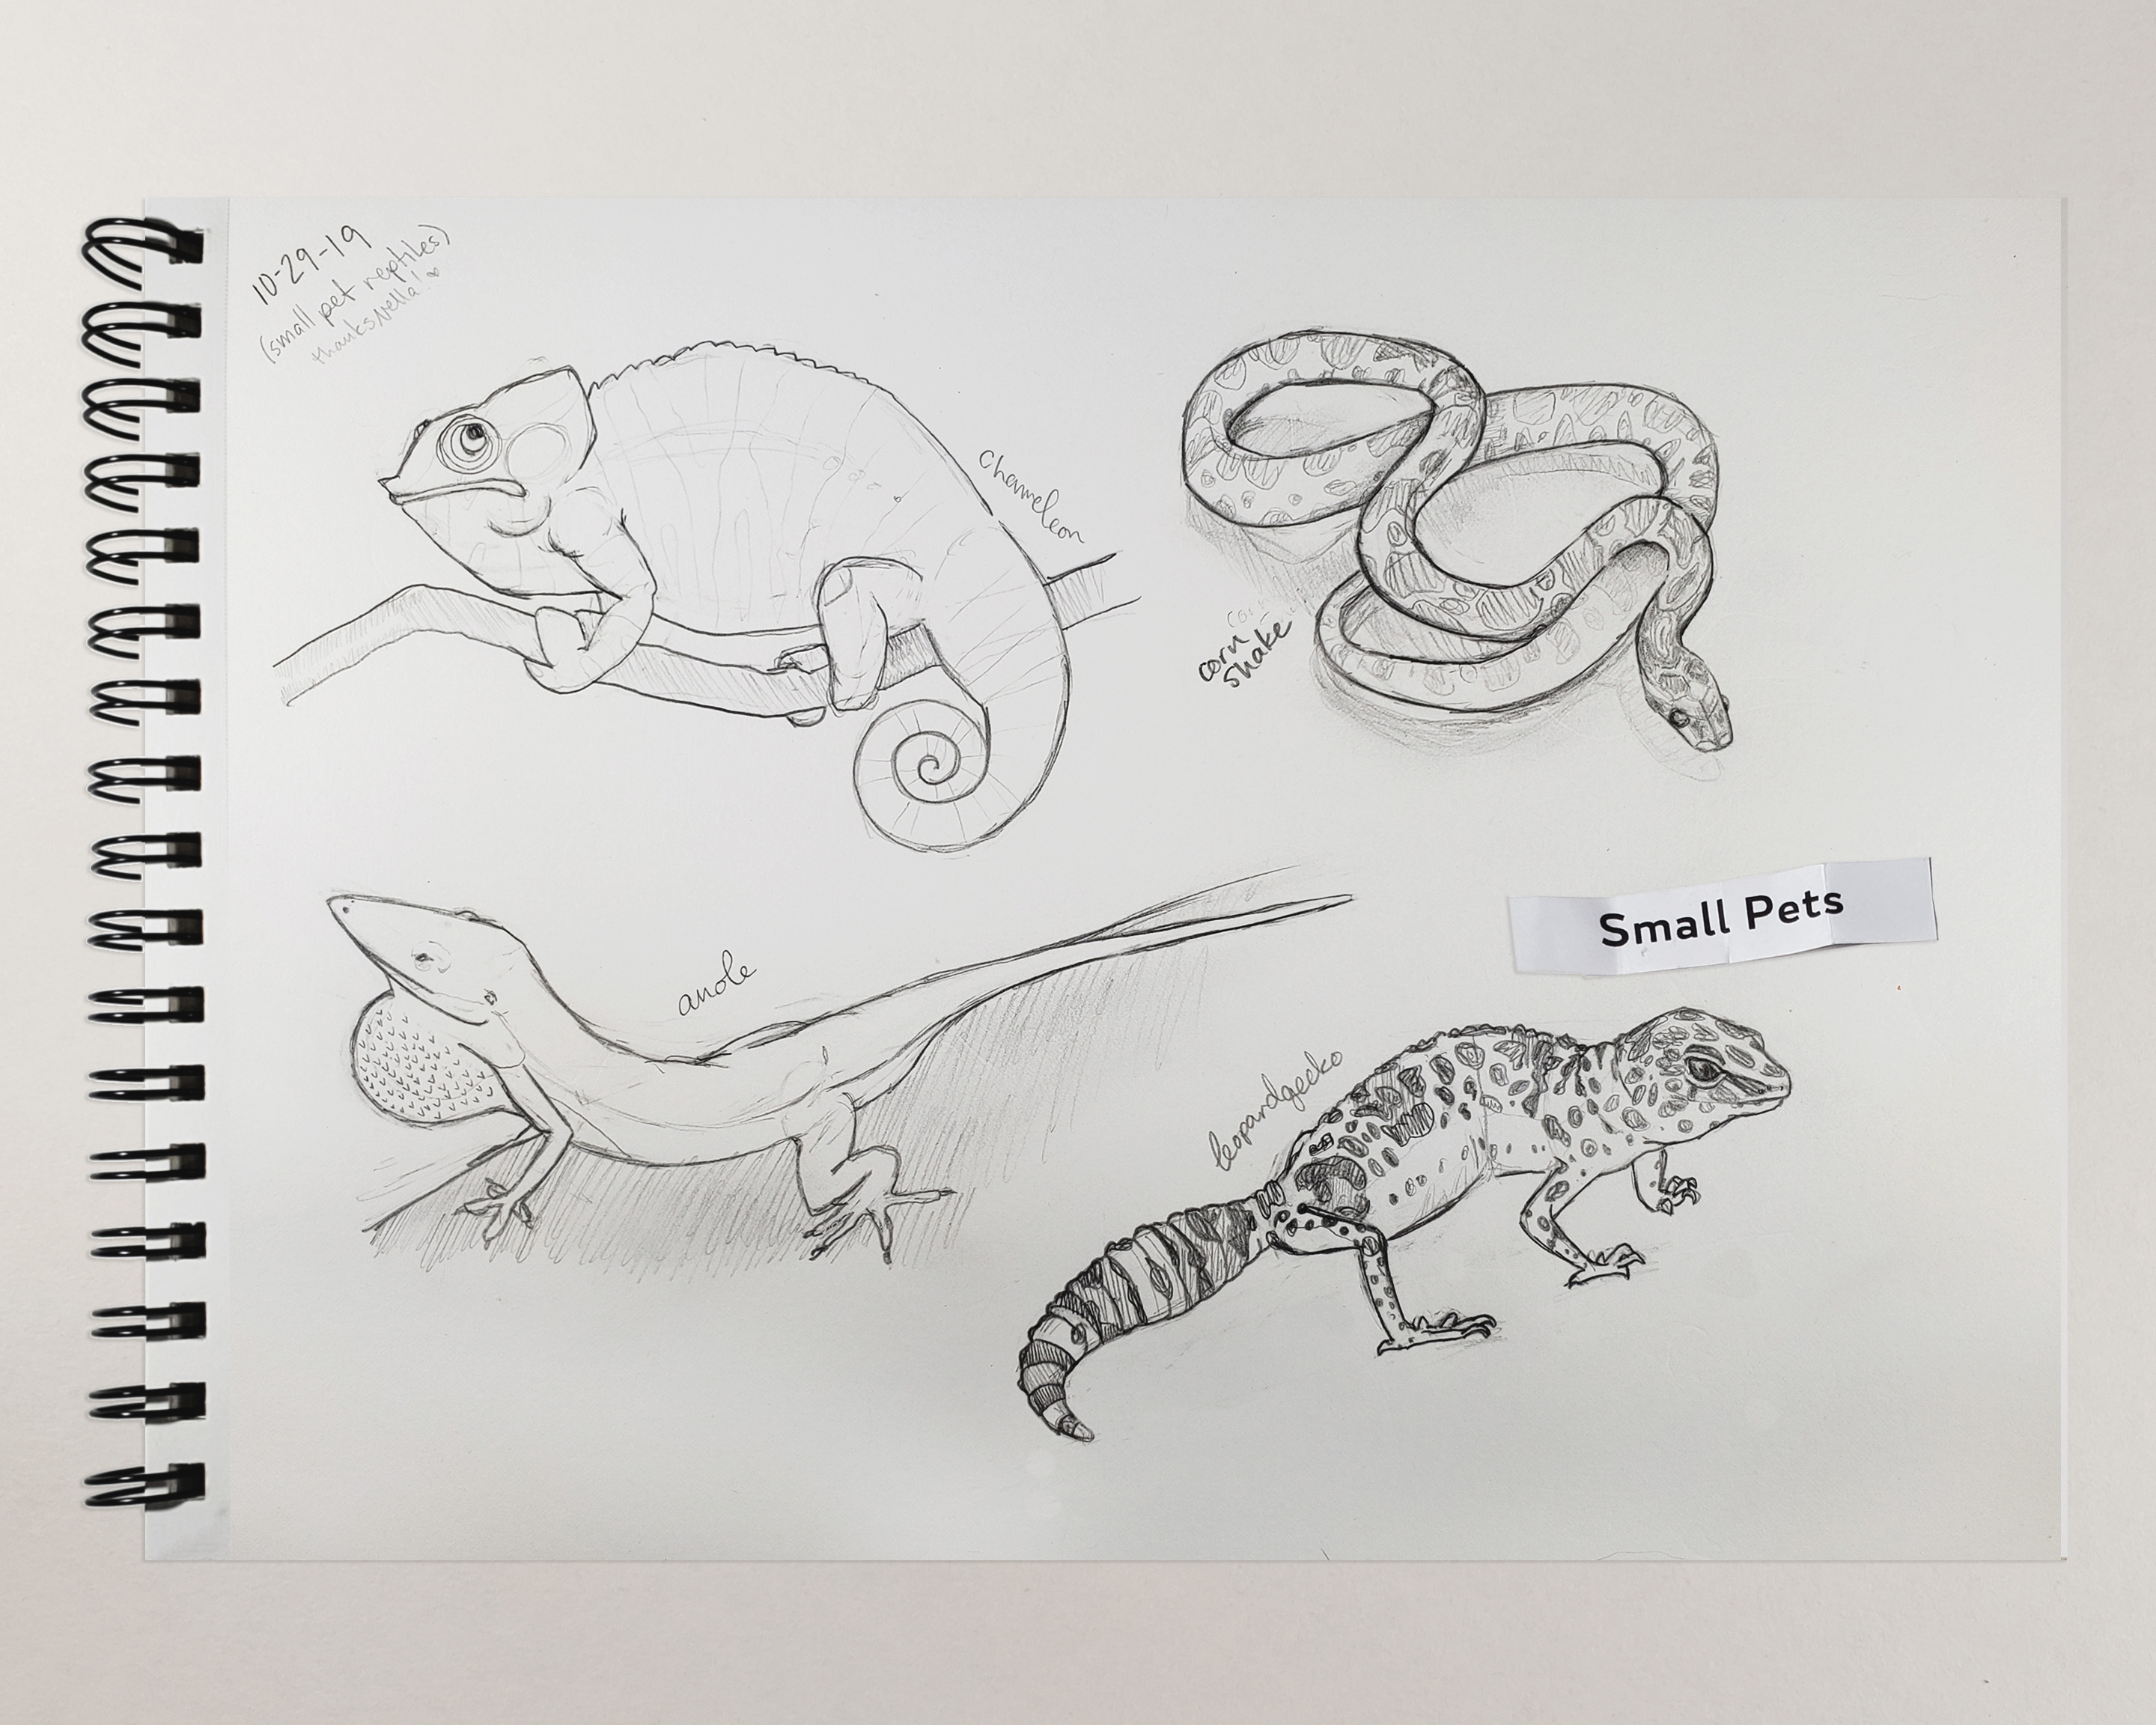 10-29-19 Small Reptile Pets Sketches